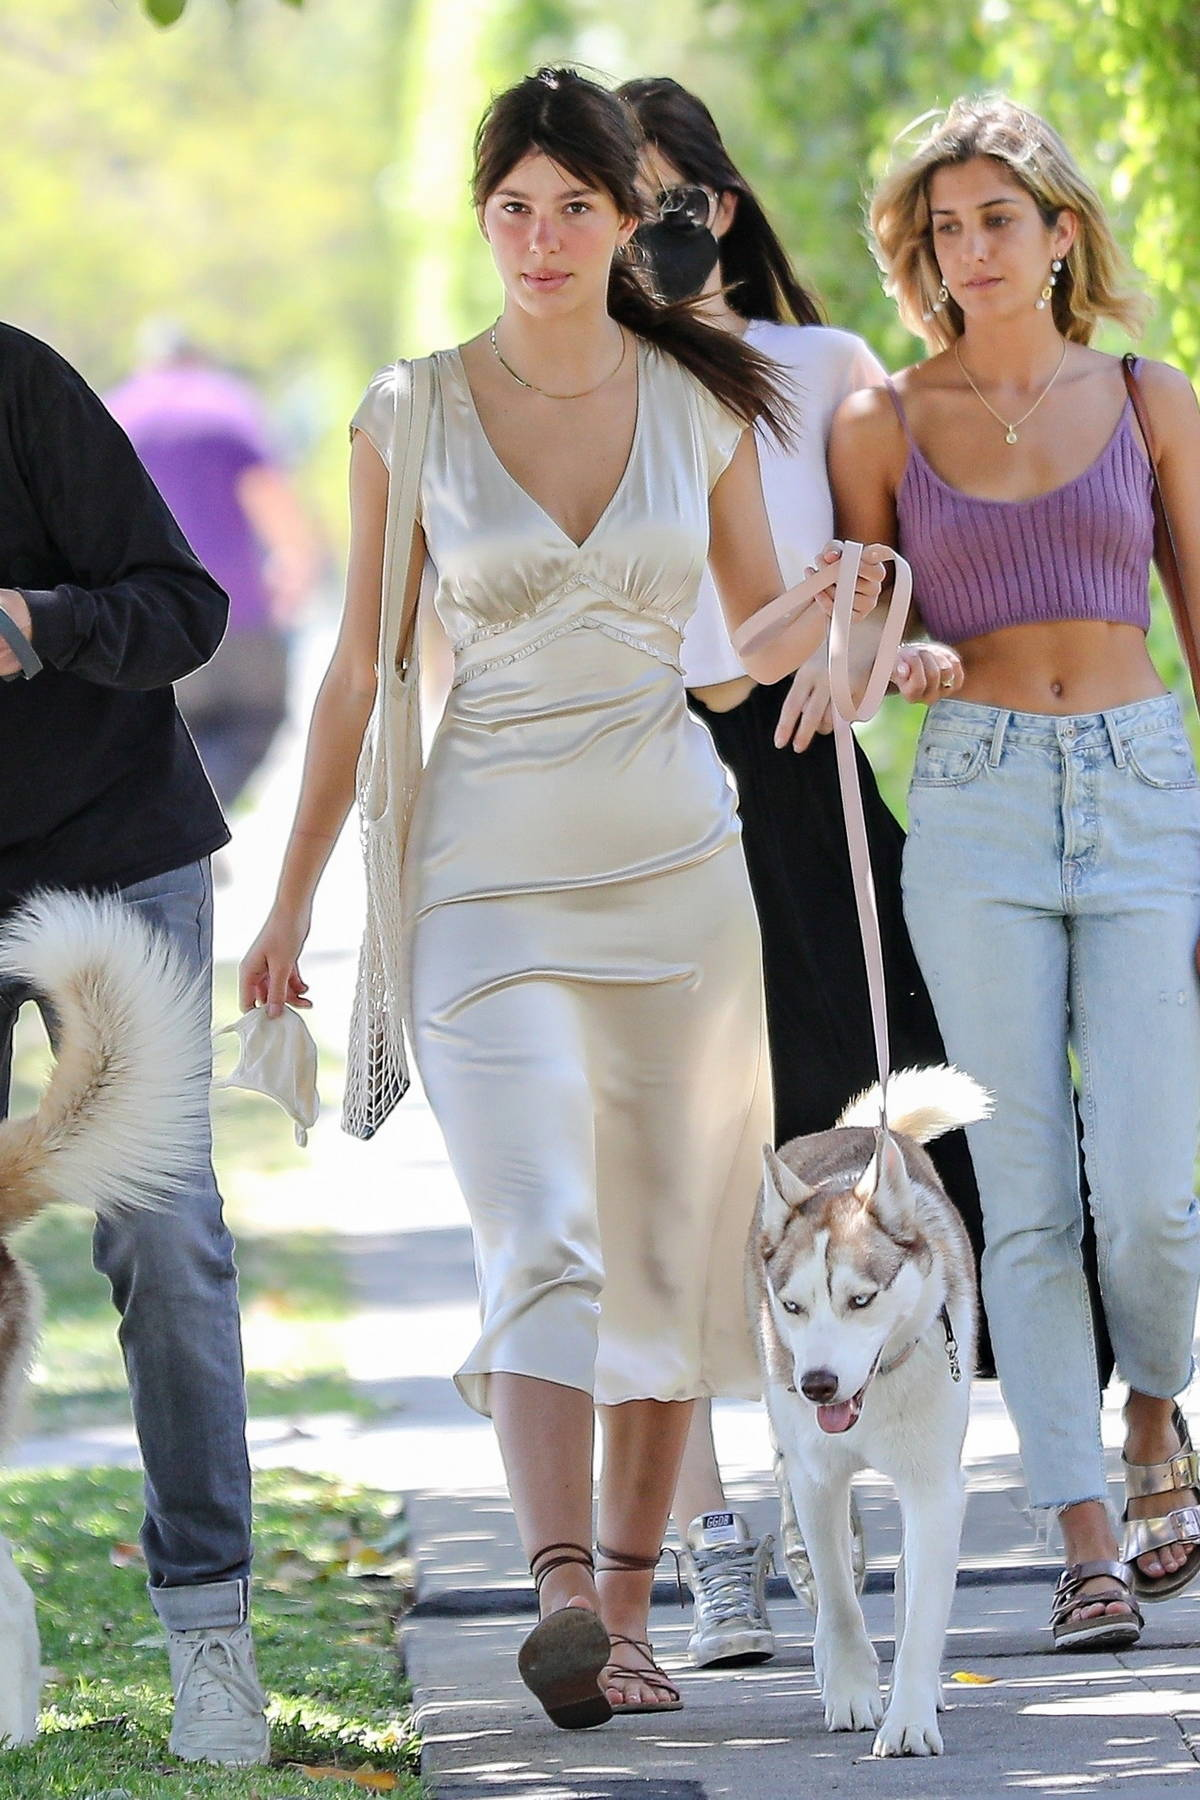 Camila Morrone looks gorgeous in a satin dress while out for walk with her mom and a few friends in Santa Monica, California